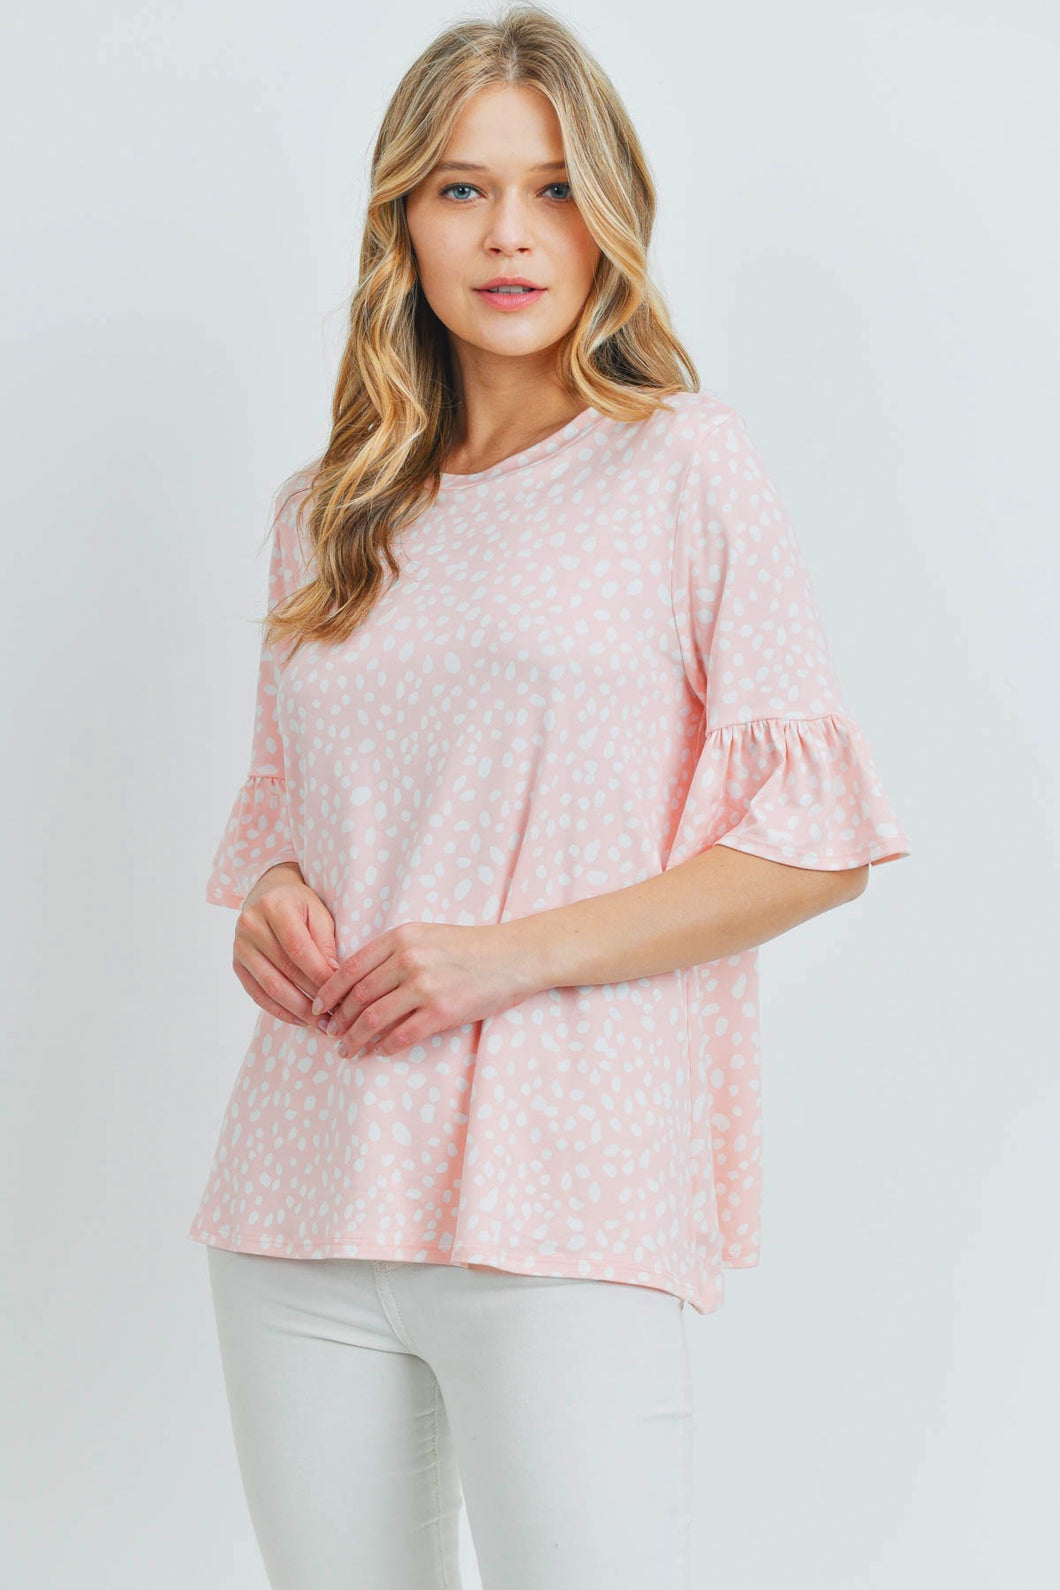 Blush Bell Sleeves Top